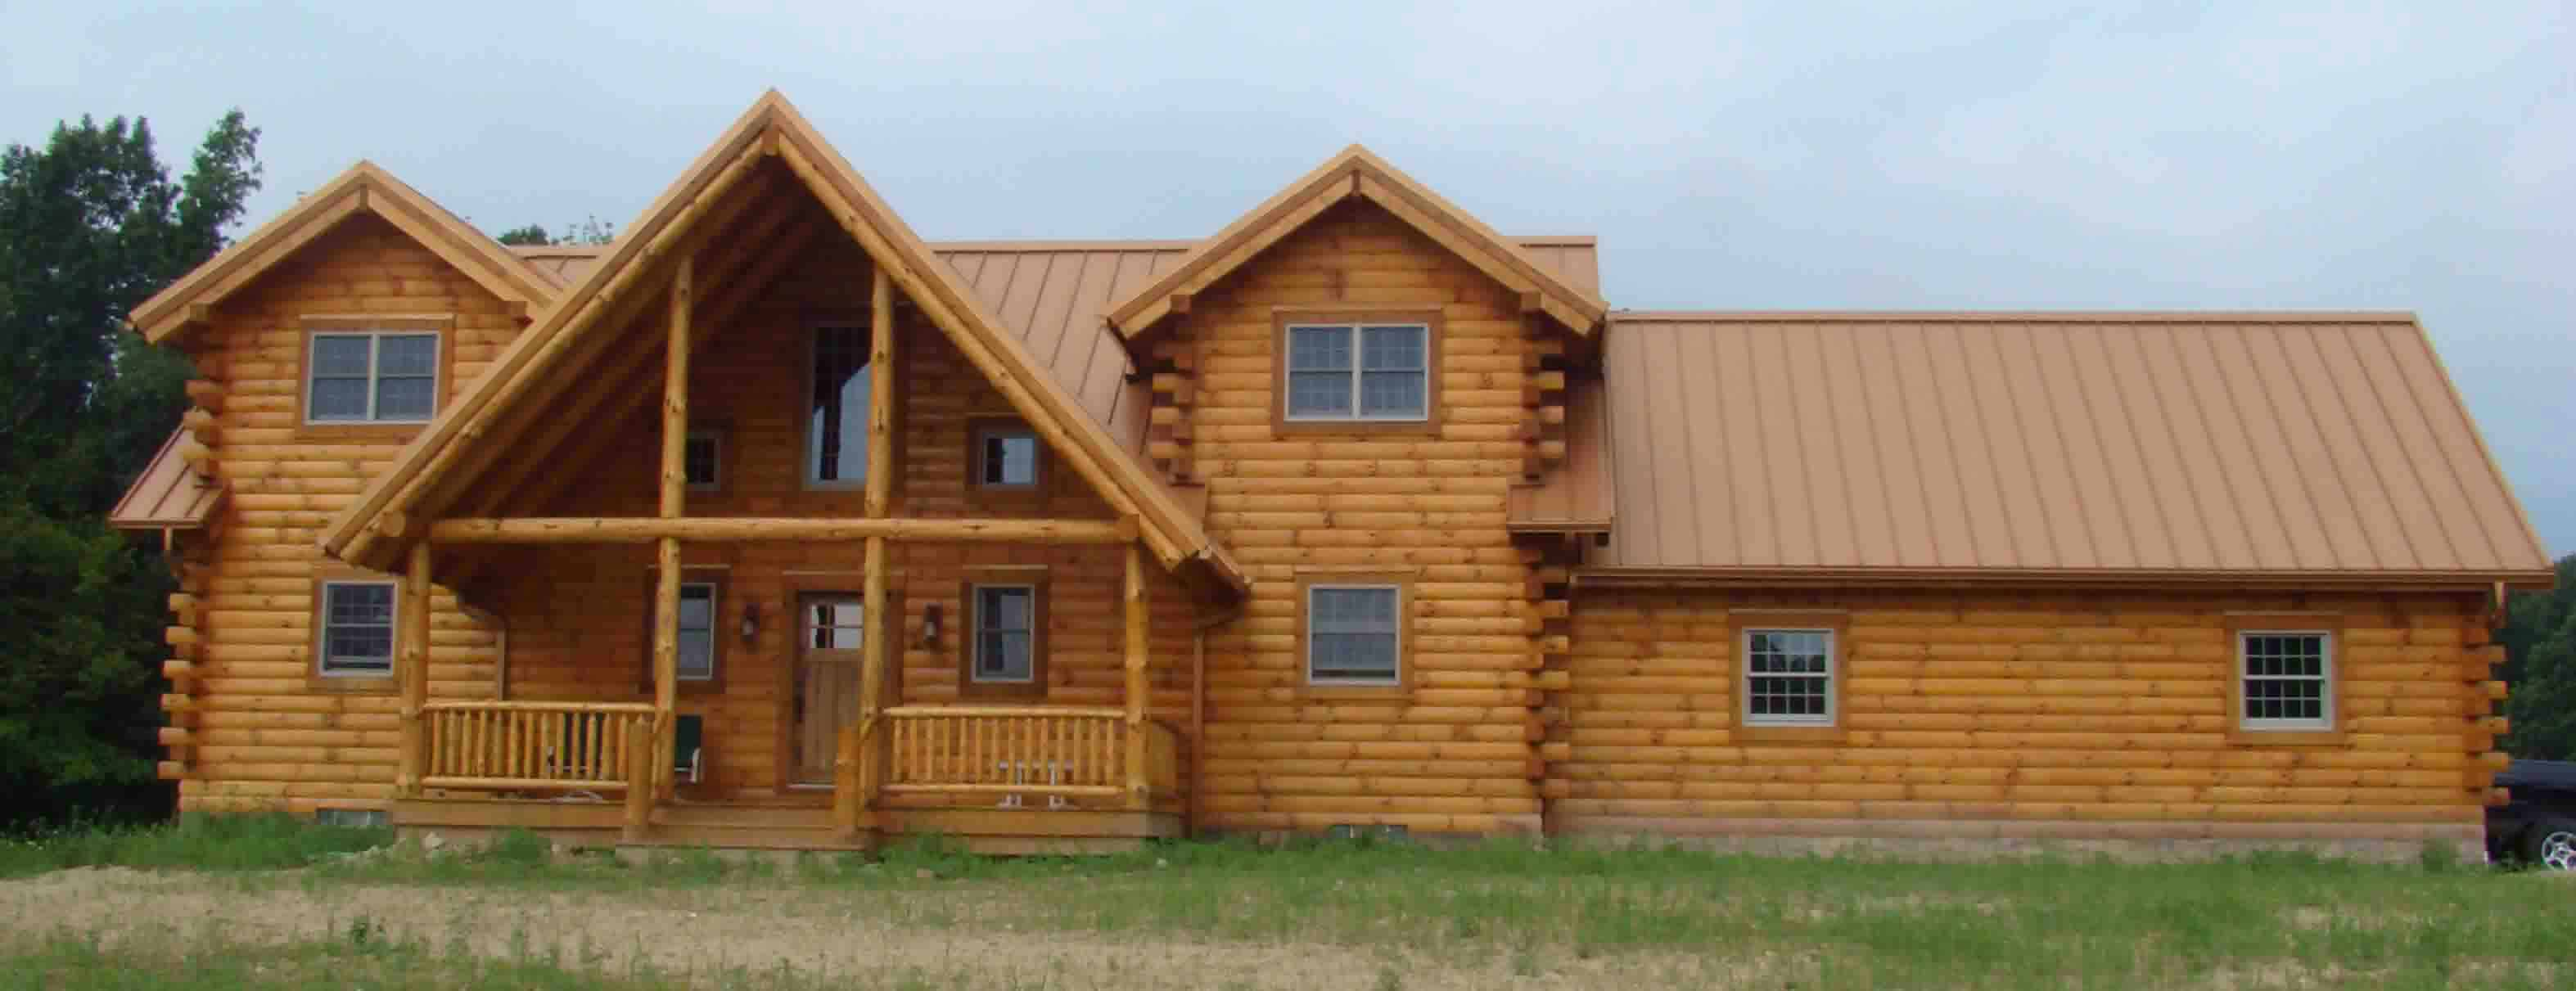 Capron Construction Company Log Home Steel Roof